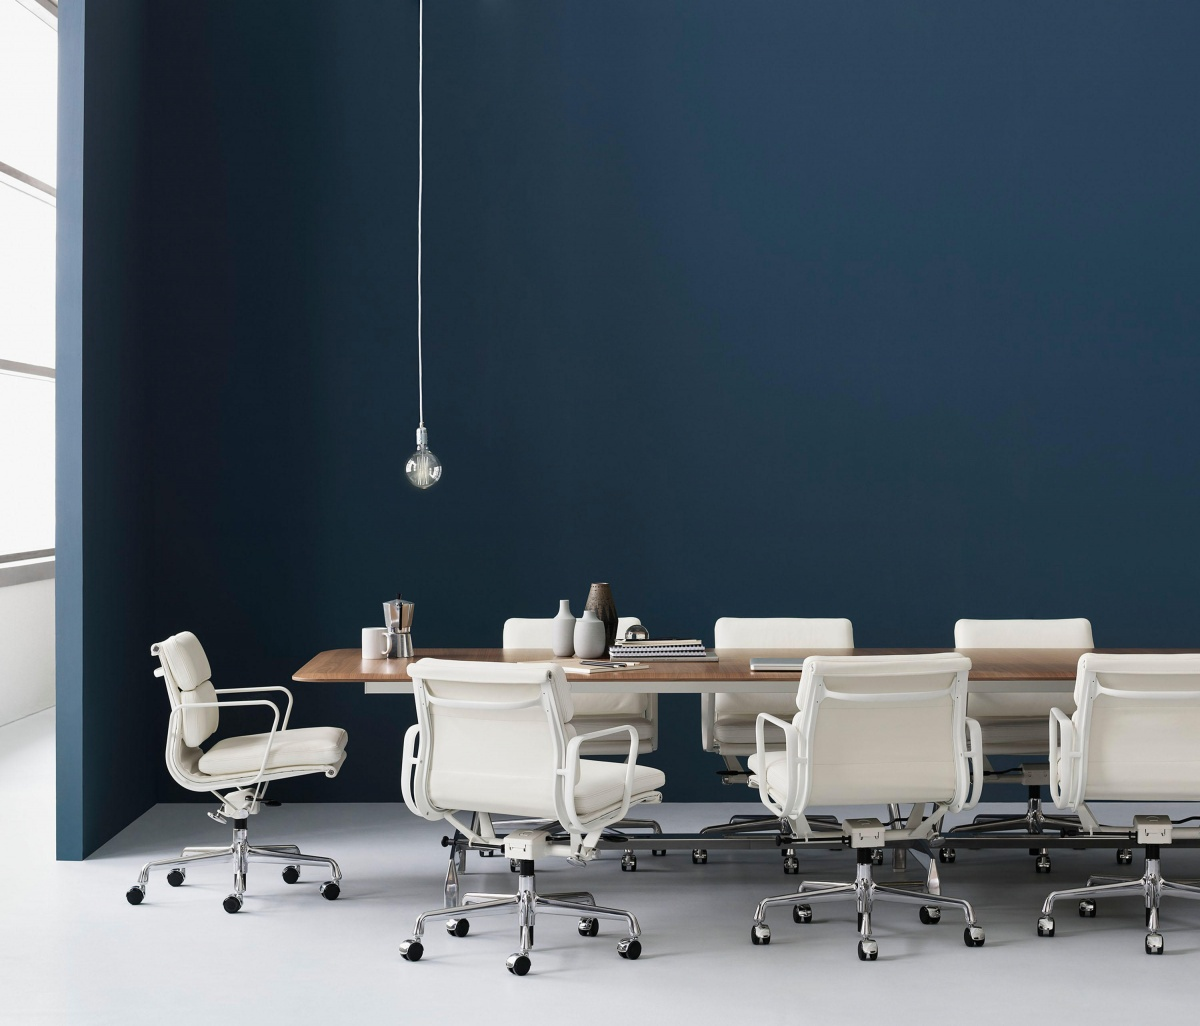 White Eames Aluminum Office Chair featured in office setting with other furniture